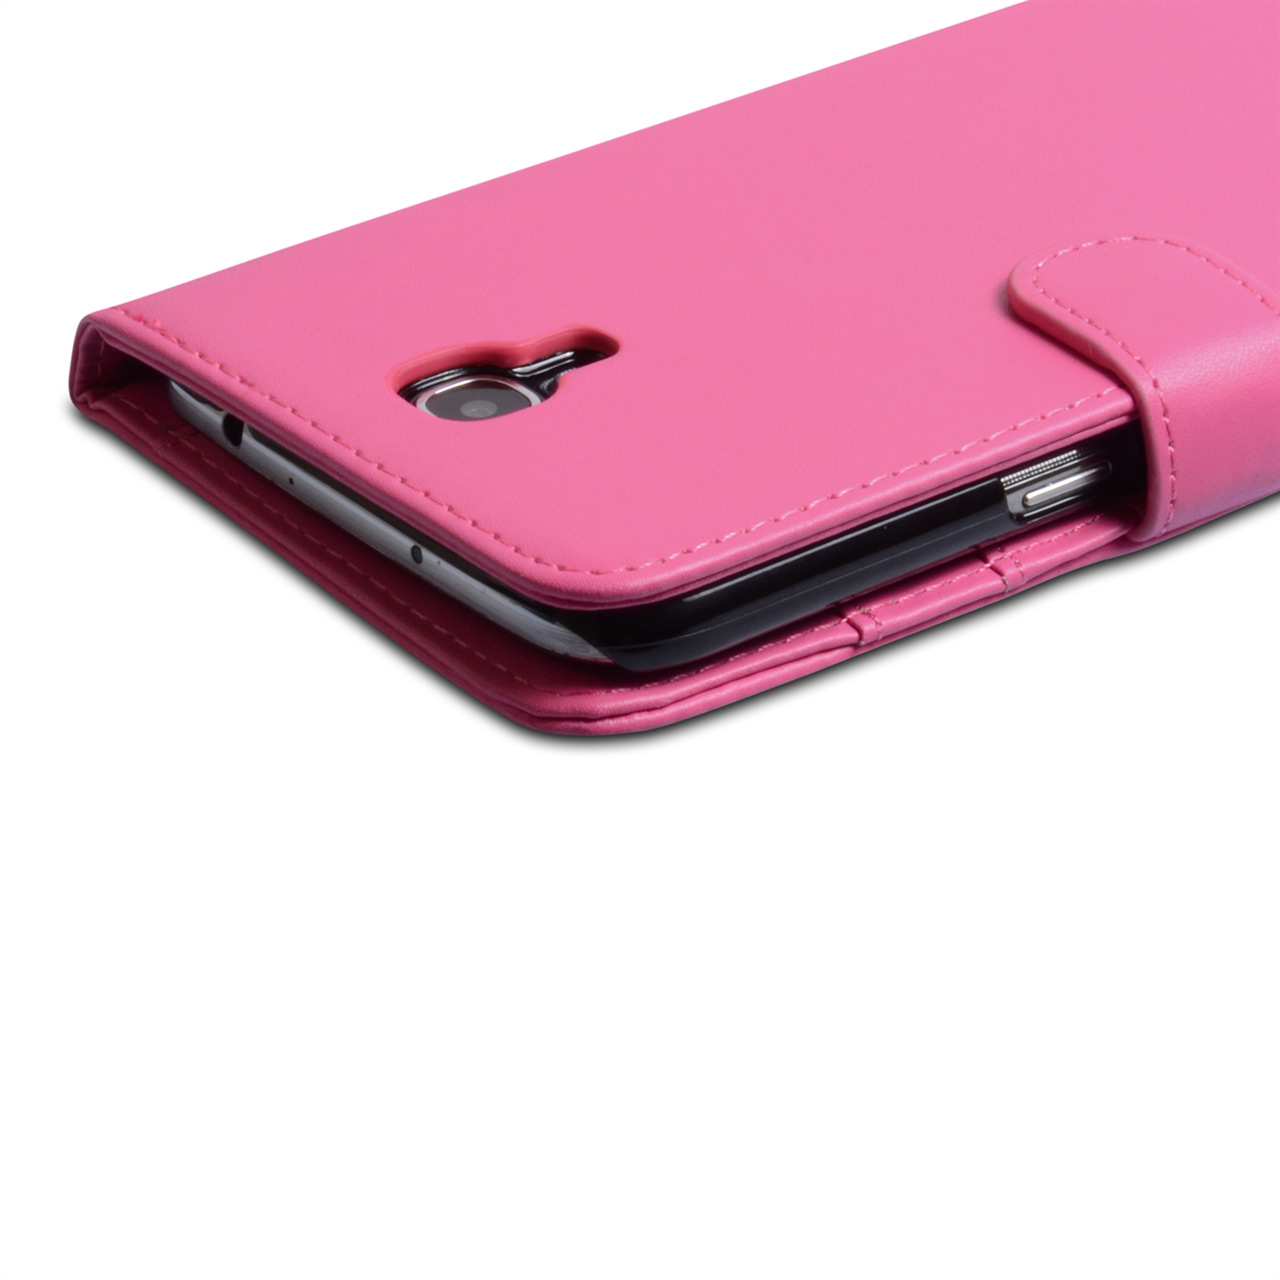 YouSave Samsung Galaxy Mega 6.3 Leather Effect Wallet Case - Hot Pink